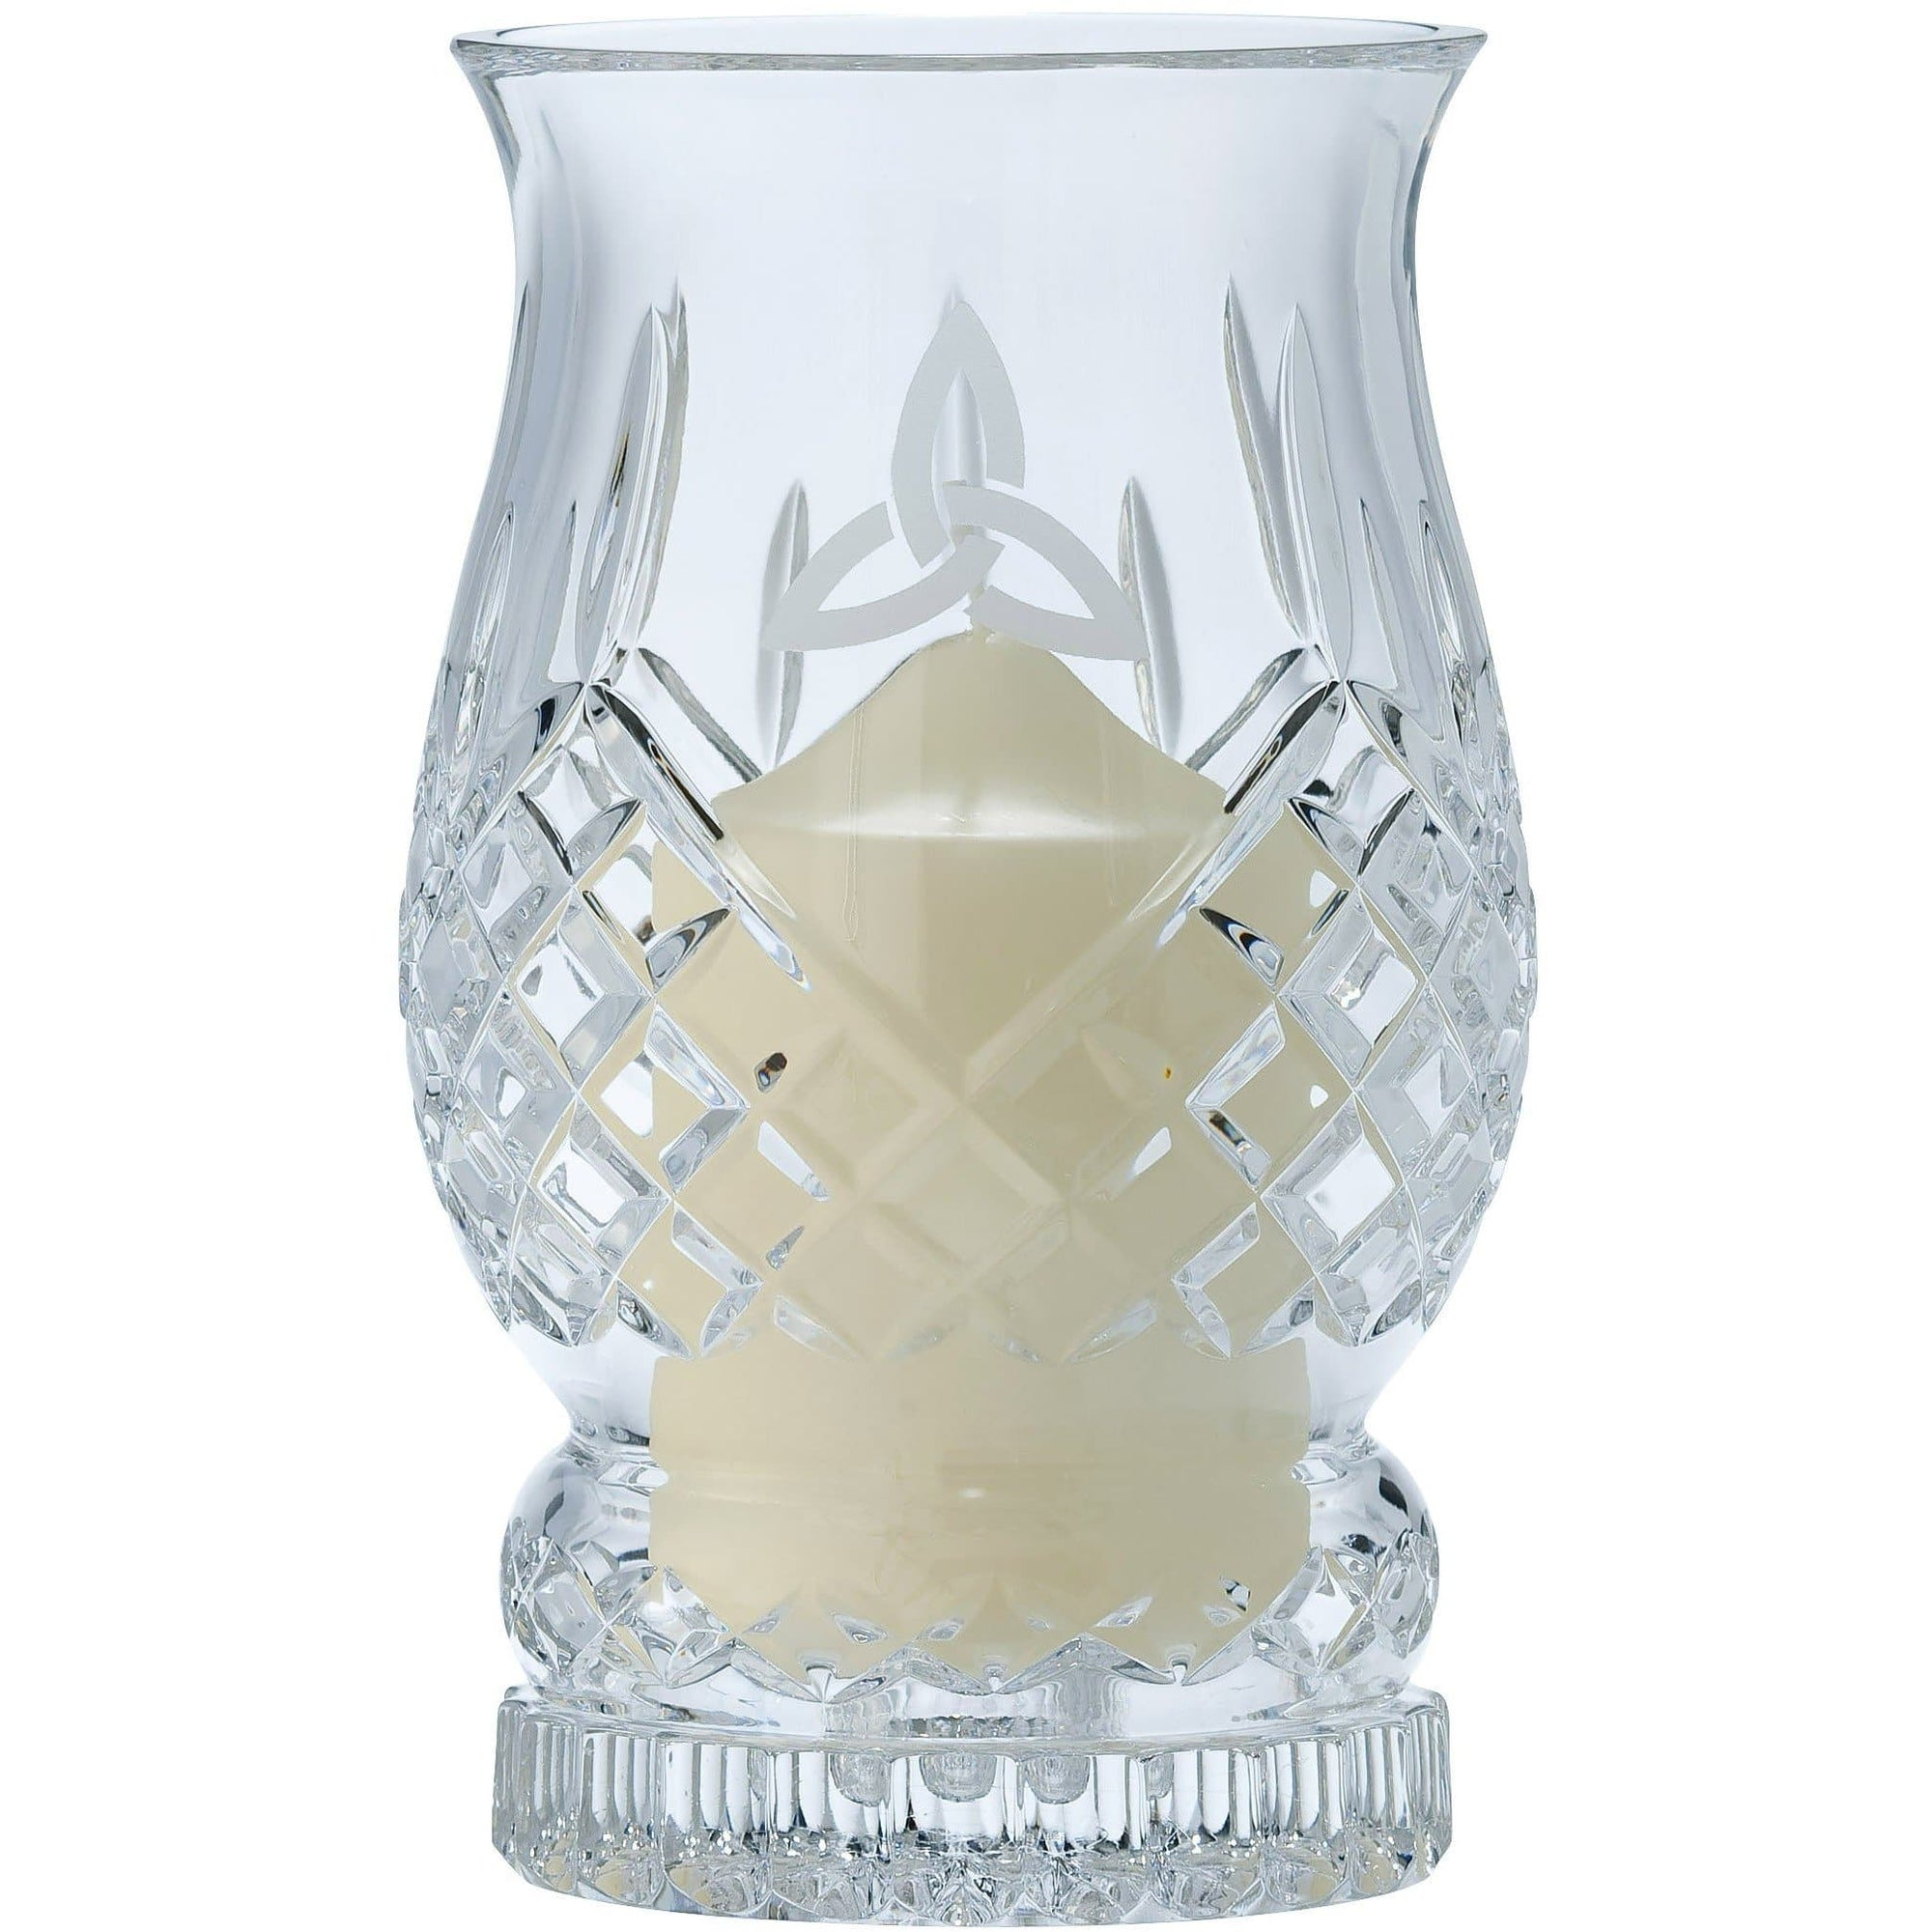 Trinity Knot Hurricane (includes candle) (G20055) - Galway Irish Crystal